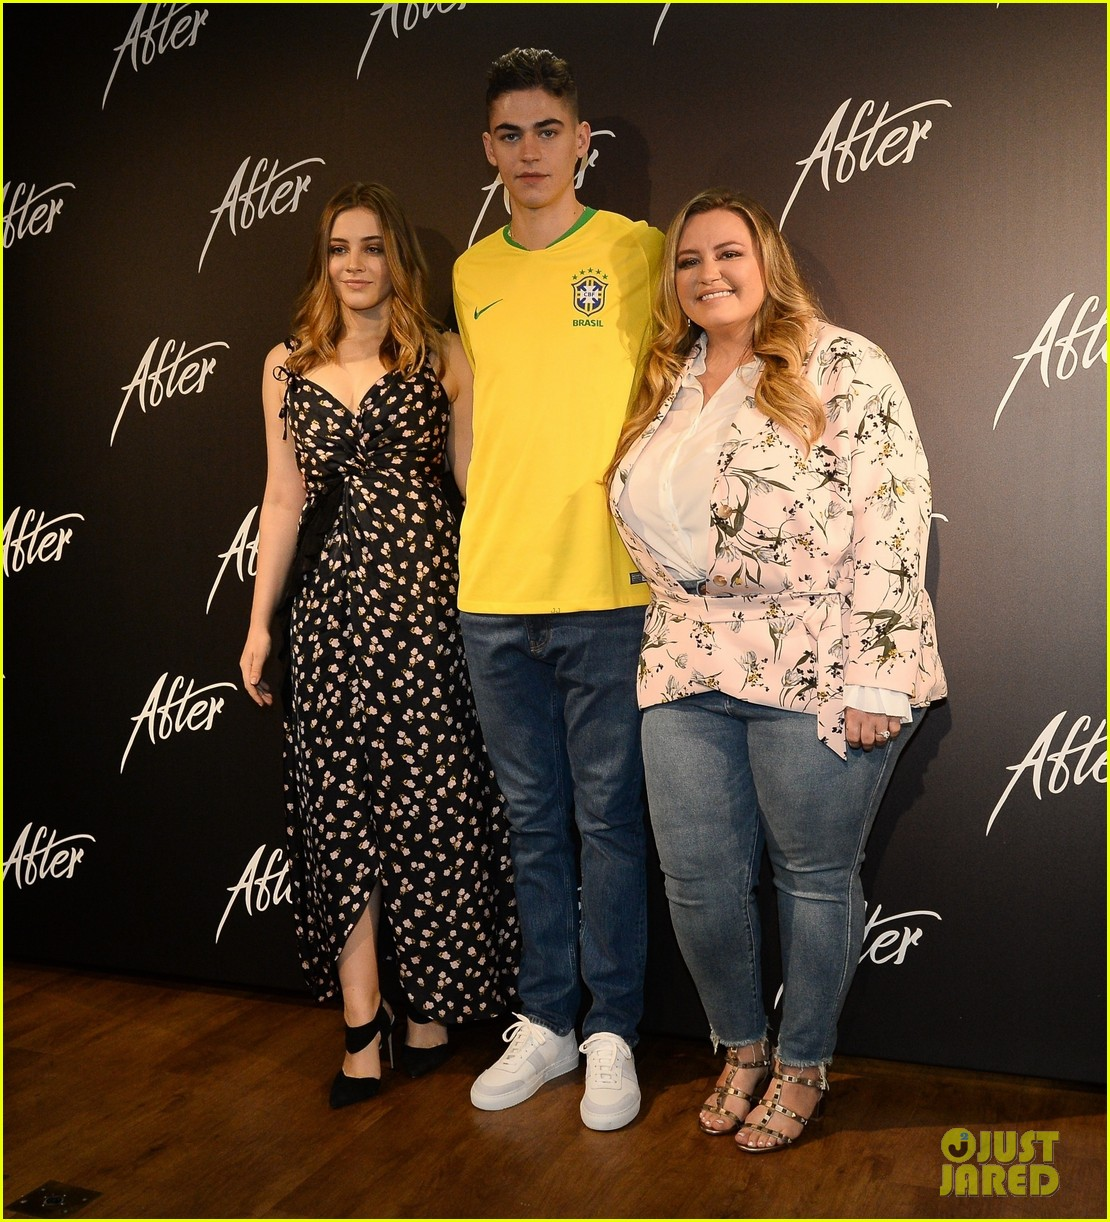 josephine langford hero fiennes tiffin after brazil 01